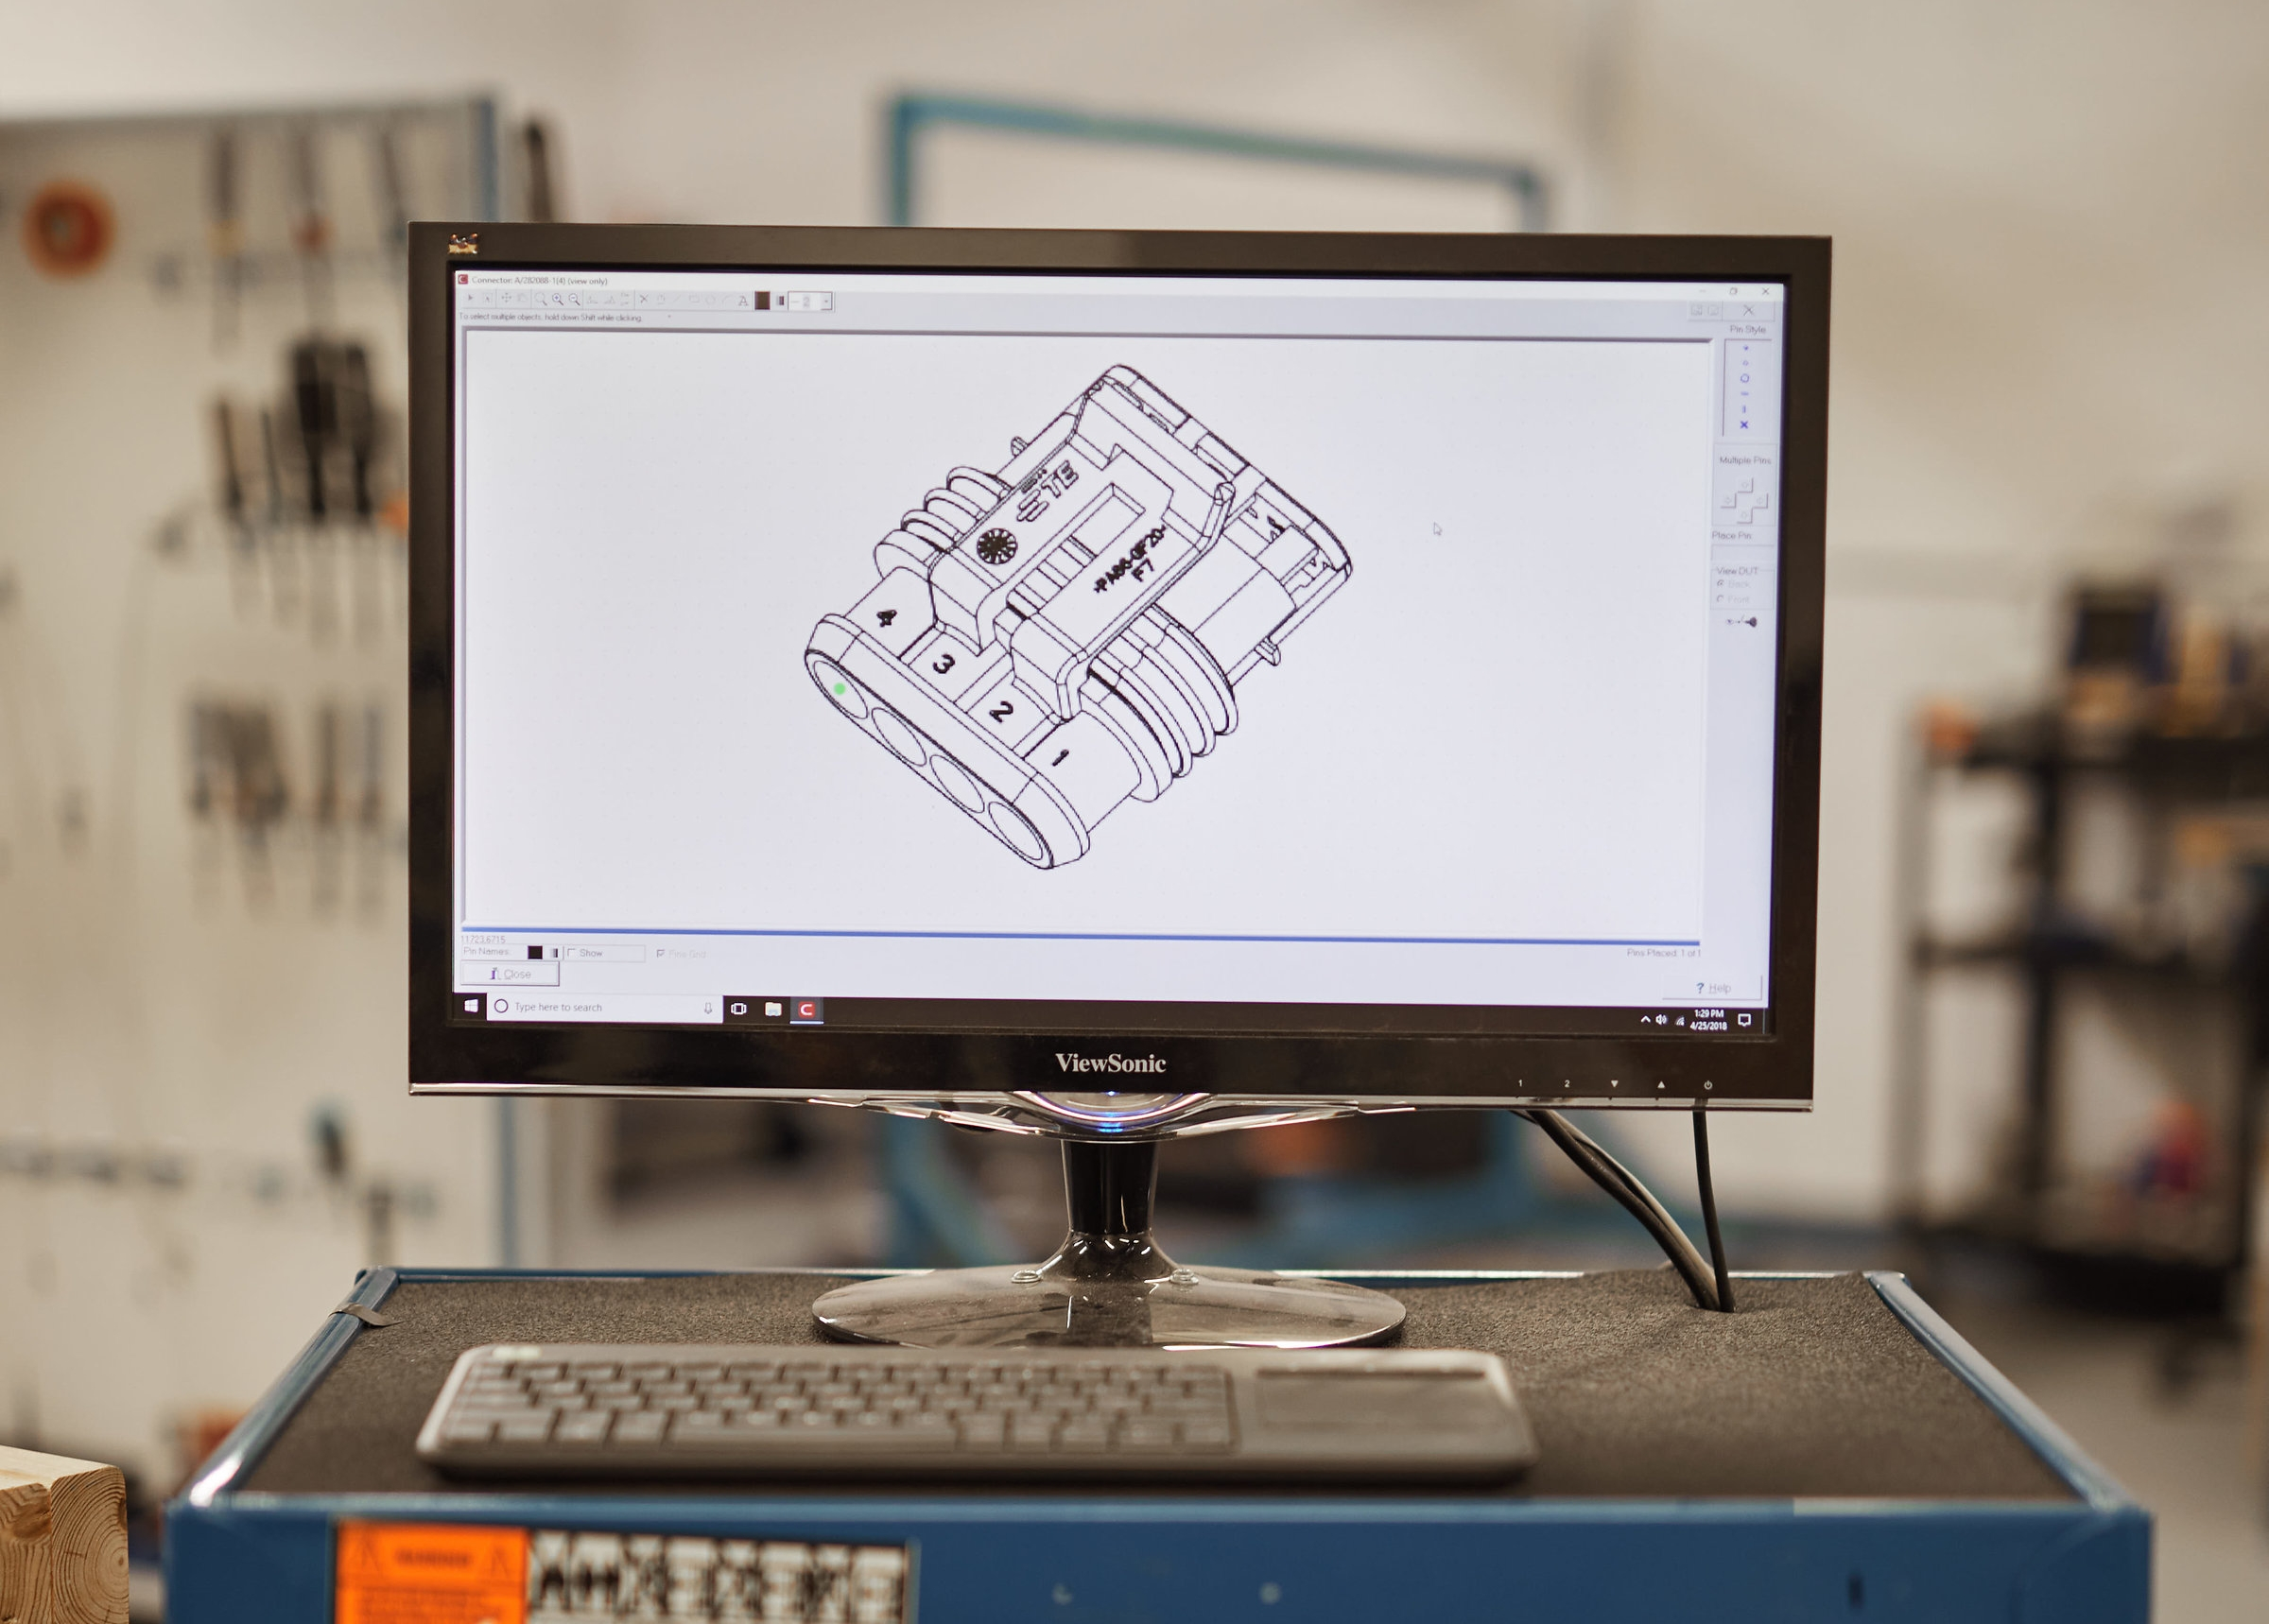 Process engineering - We pride ourselves on providing support and custom solutions from an engineering perspective from short run prototype builds, design for manufacturing,product quality and expertise.